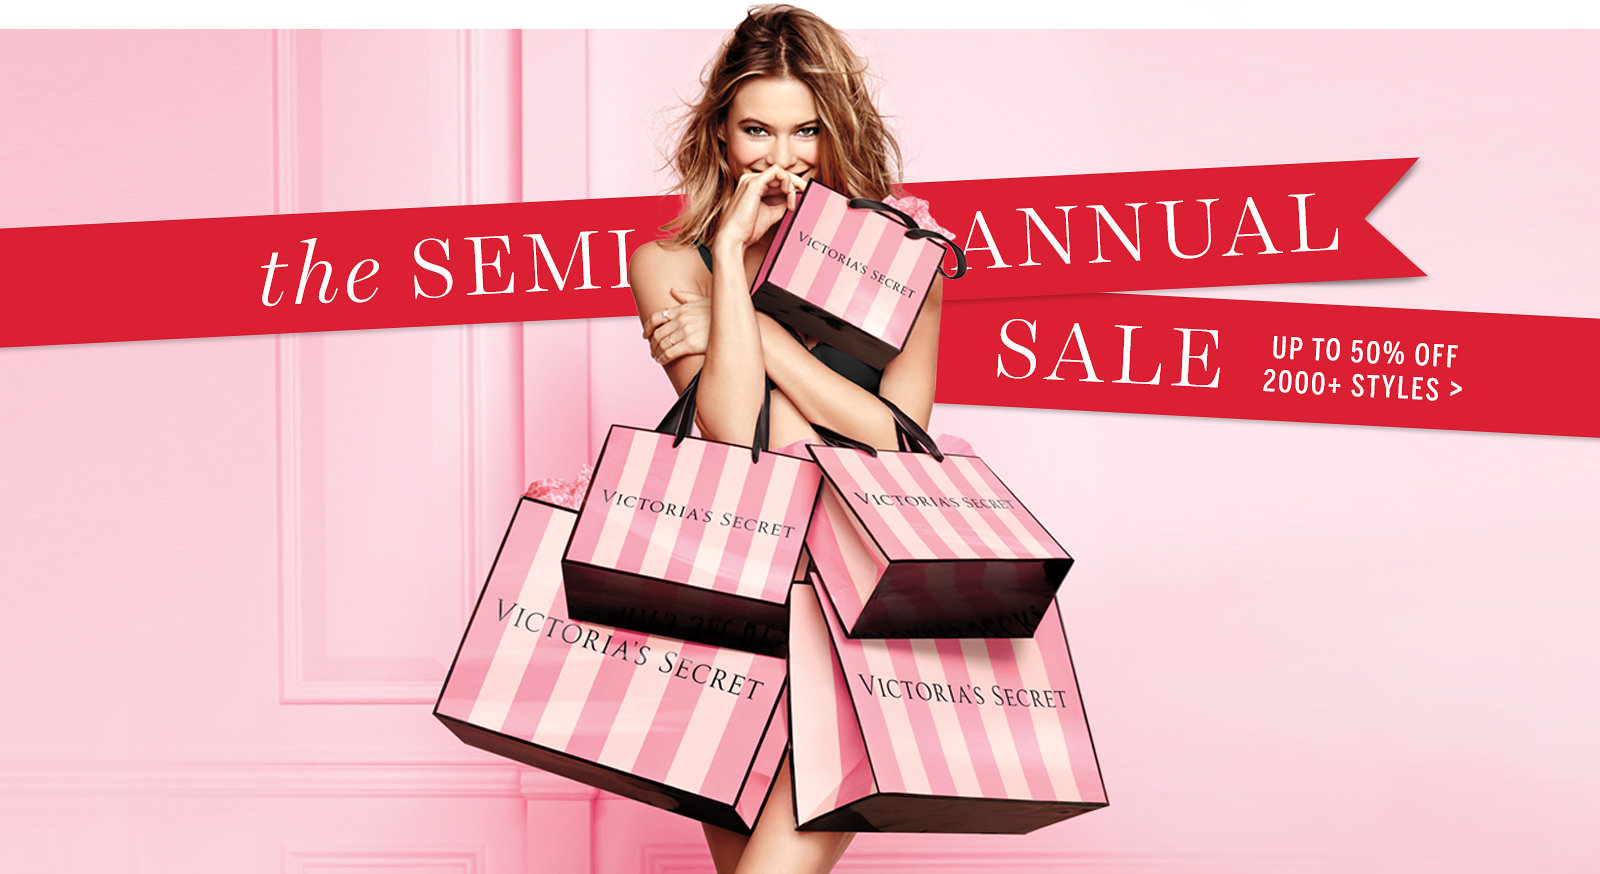 Victoria secret half yearly sale